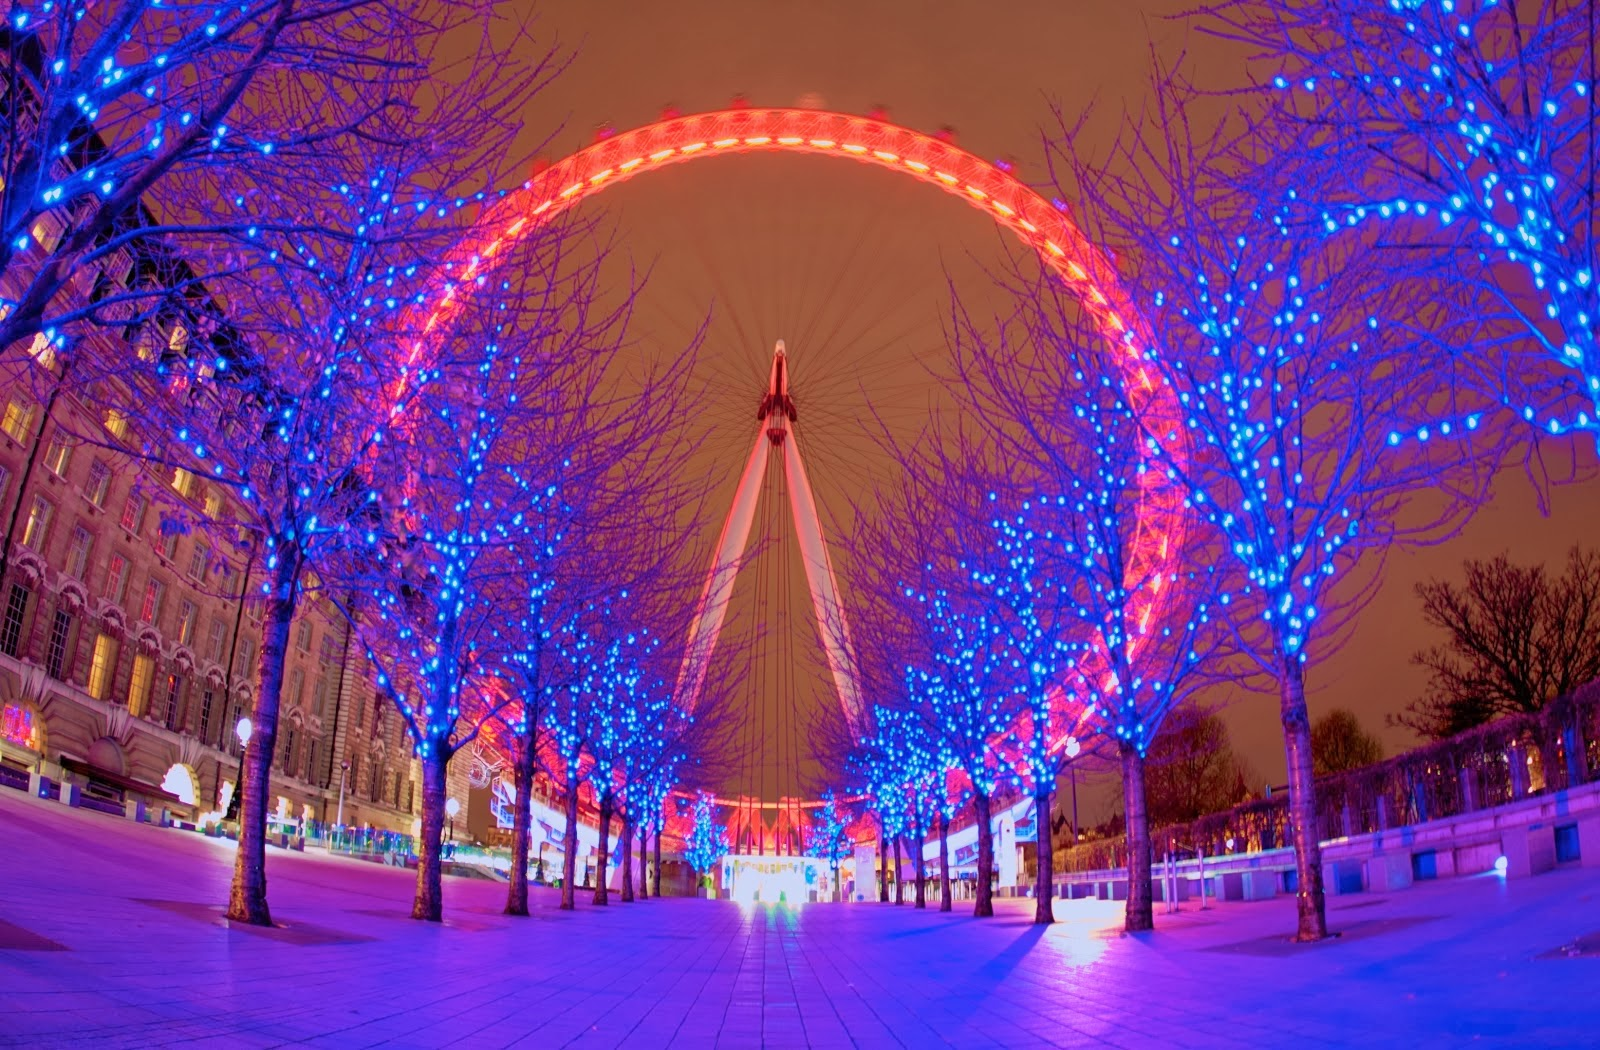 christmas london eye hd wallpapers by hd wallpapers which blog 1600x1050